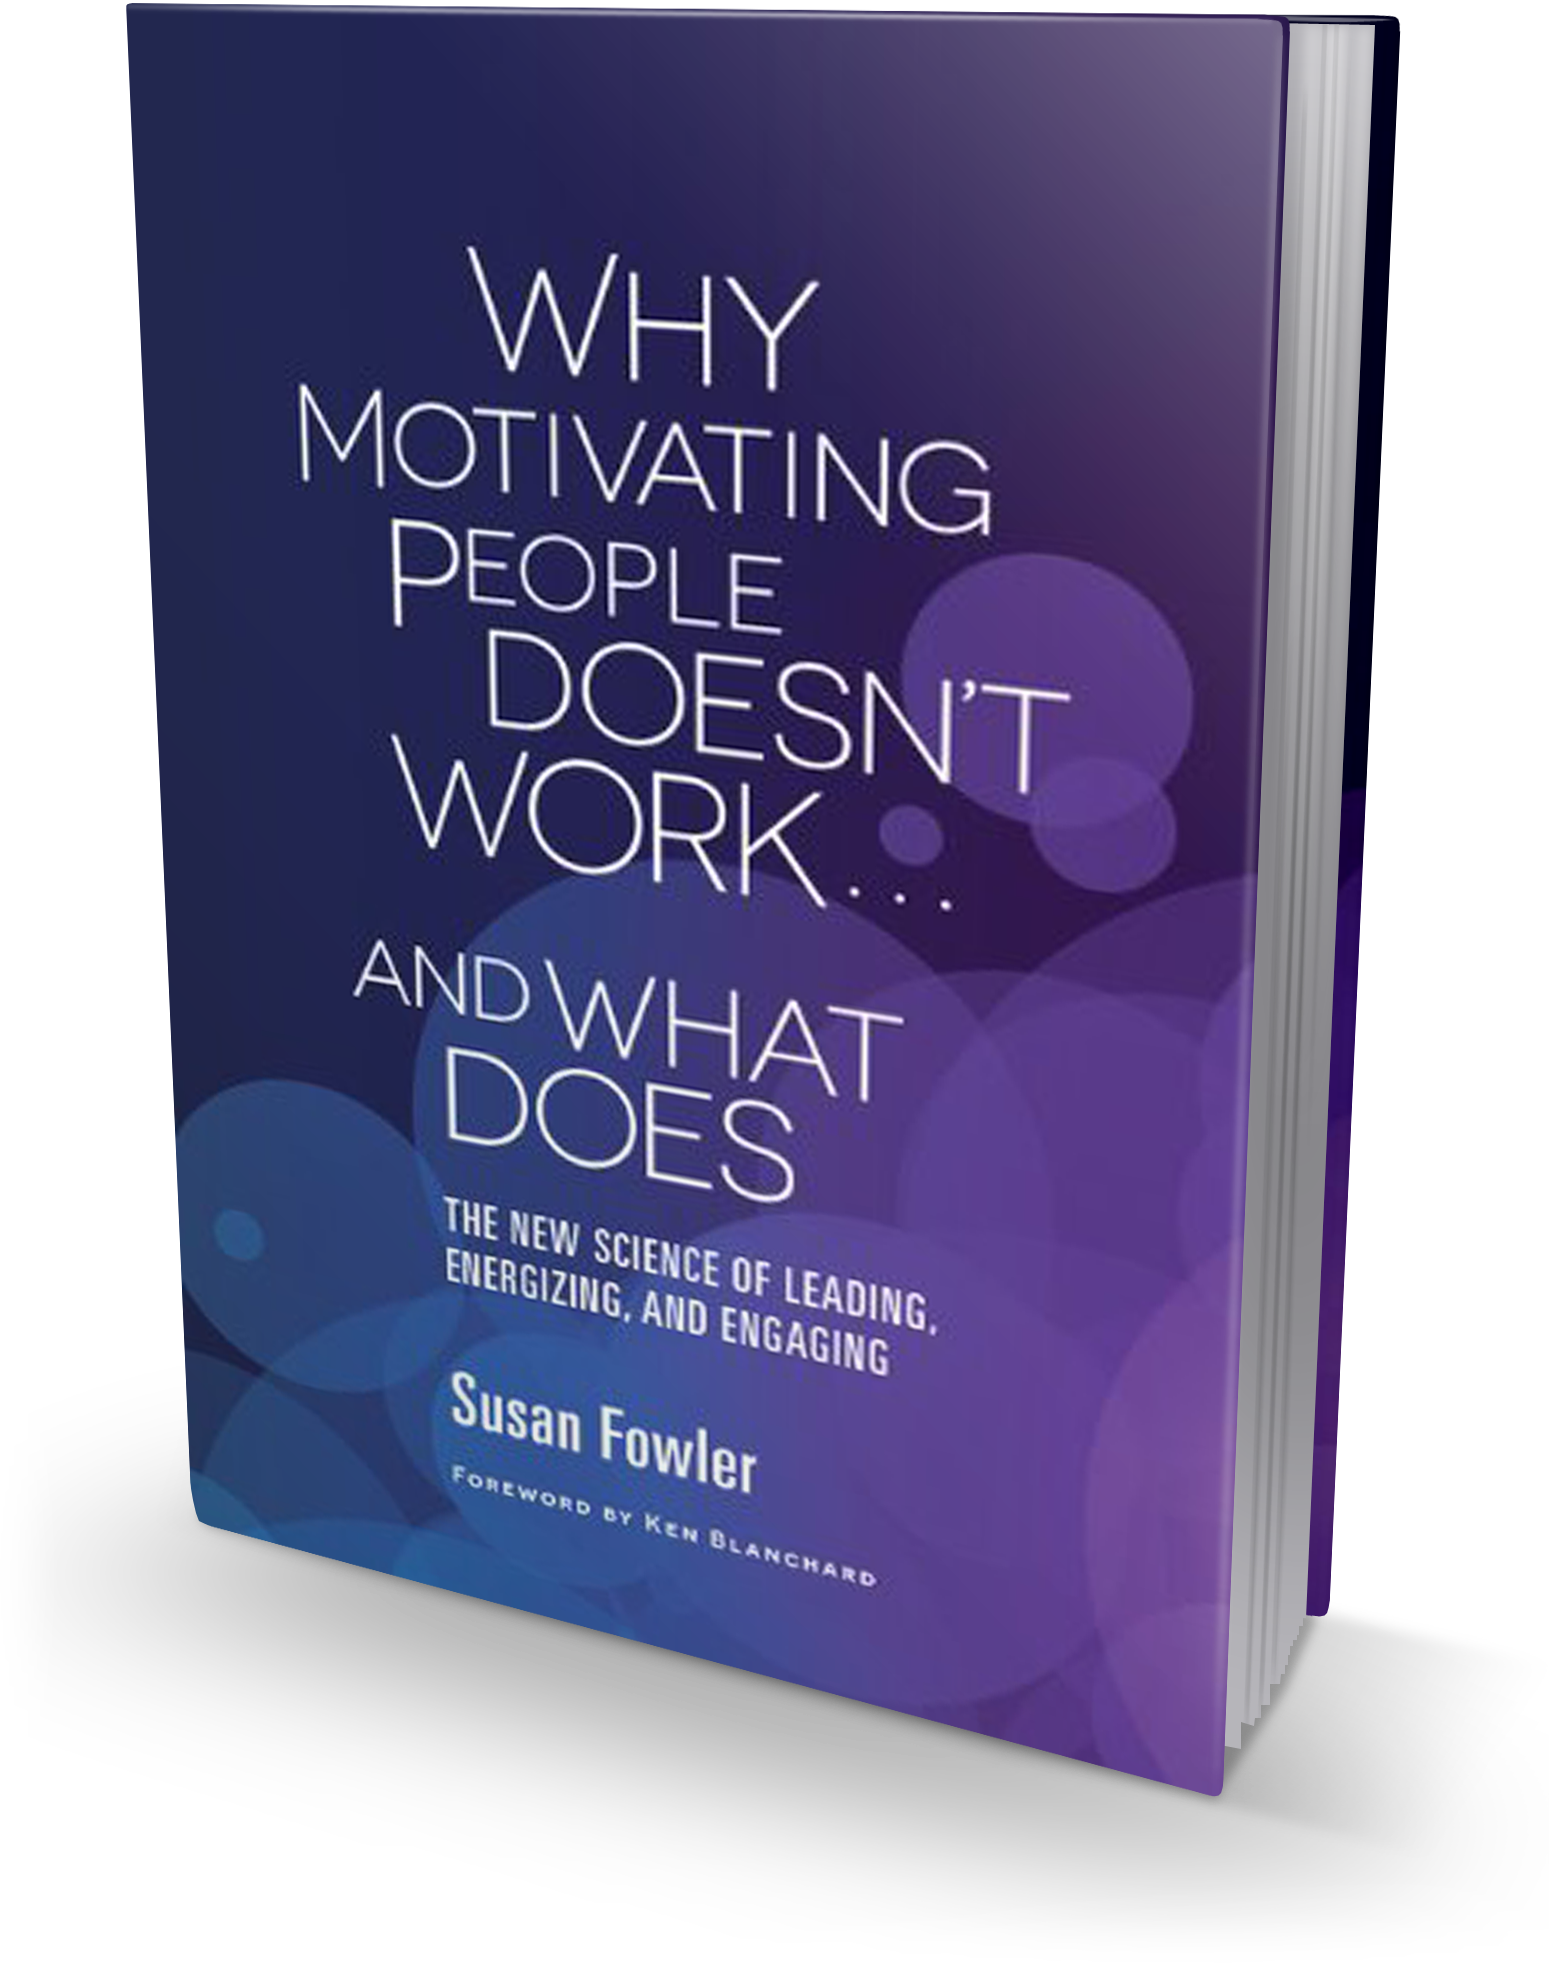 Why Motivating People Doesn't Work book cover